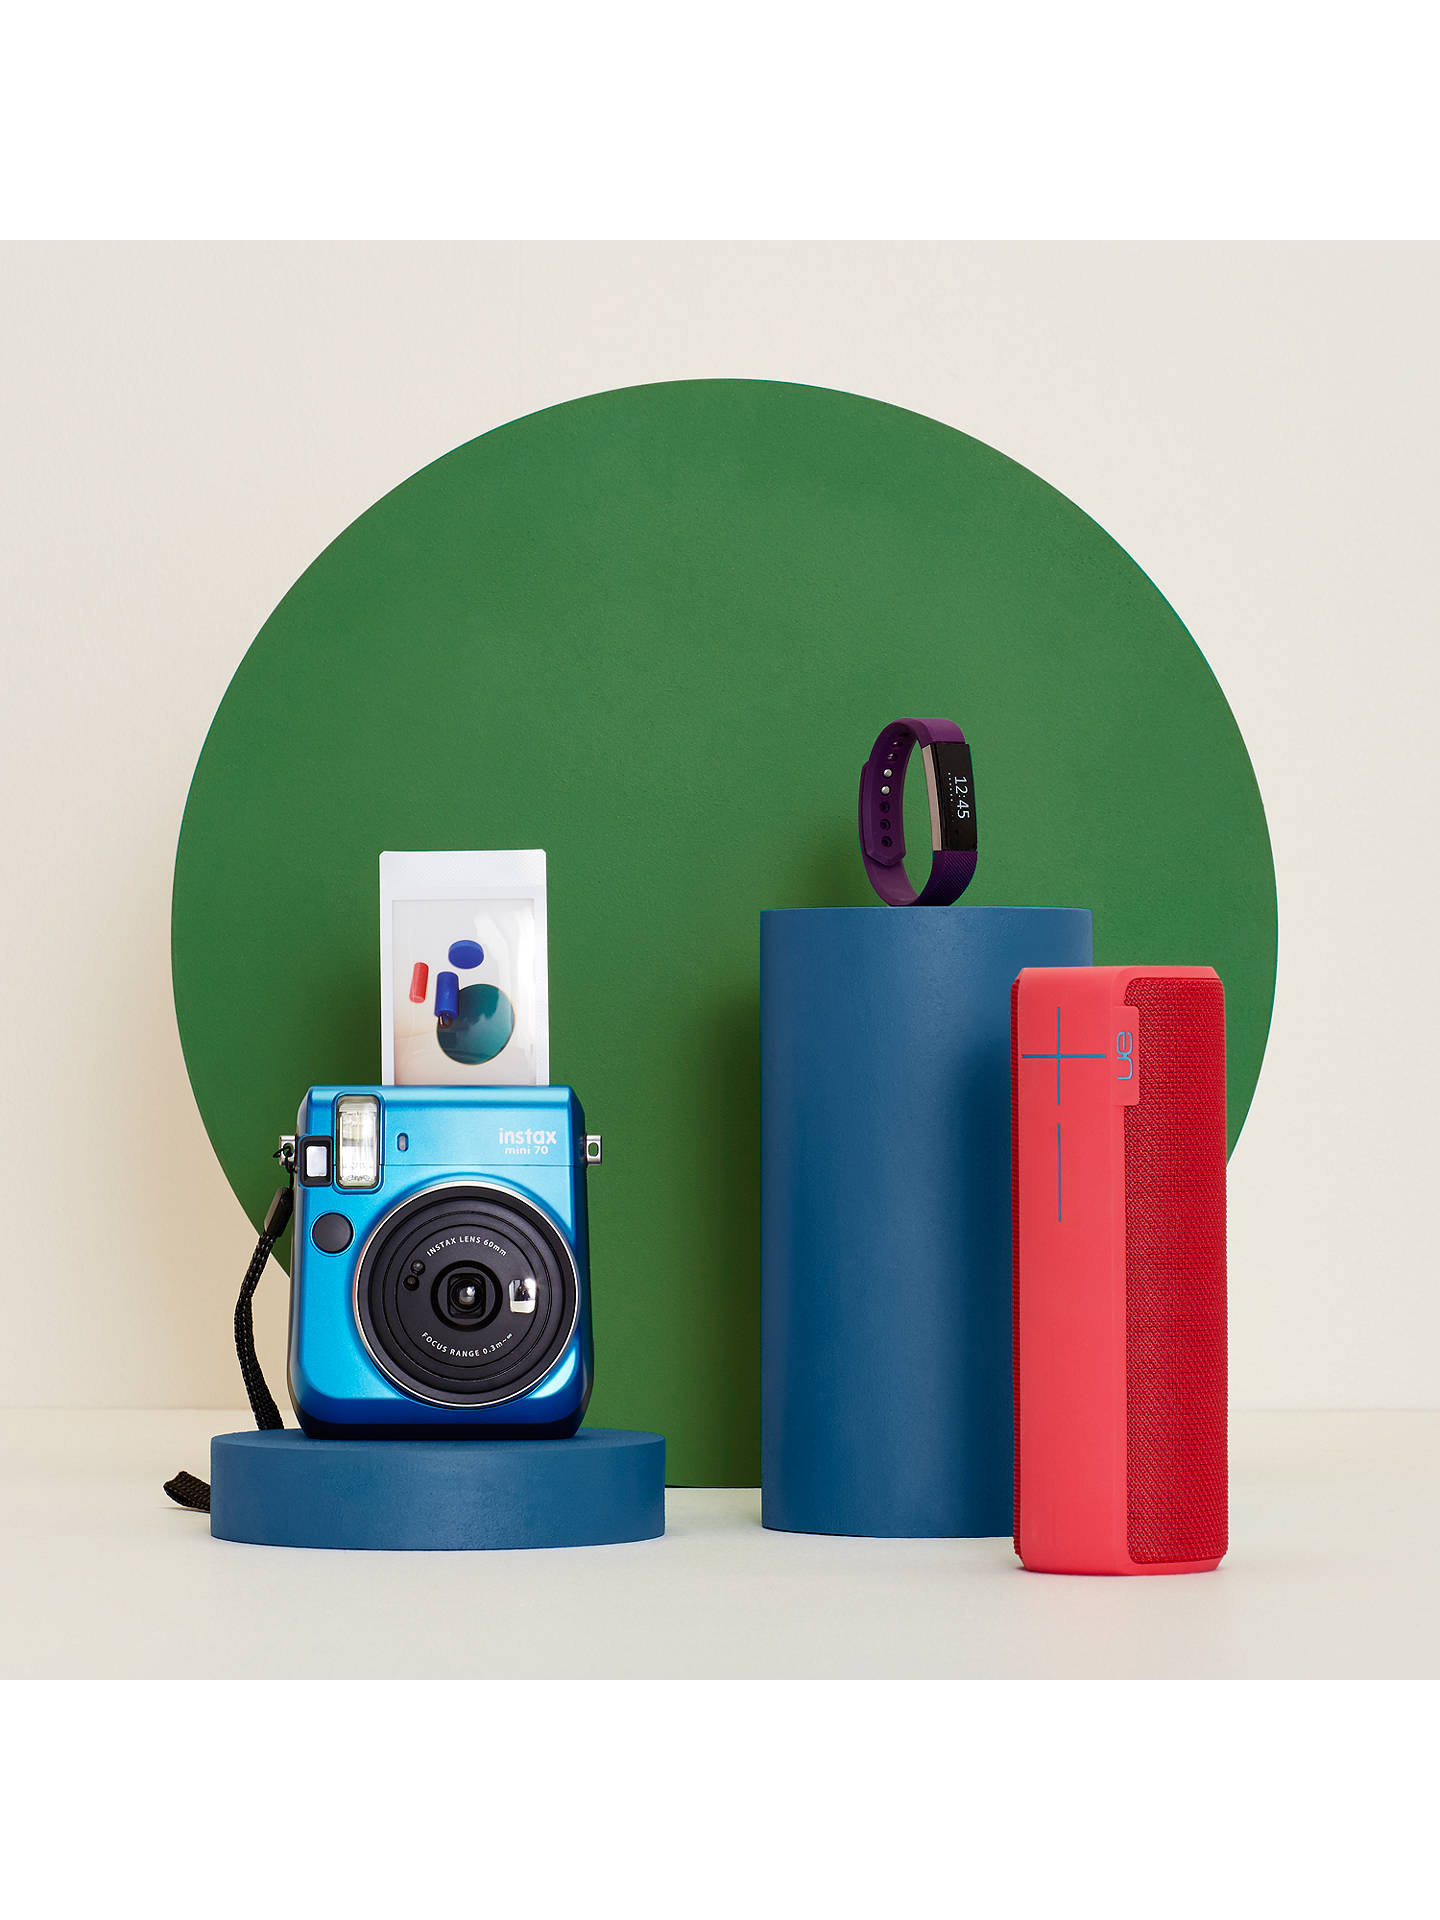 BuyFujifilm Instax Mini 70 Instant Camera With 10 Shots Of Film, Selfi Mode, Built-In Flash & Hand Strap, Blue Online at johnlewis.com